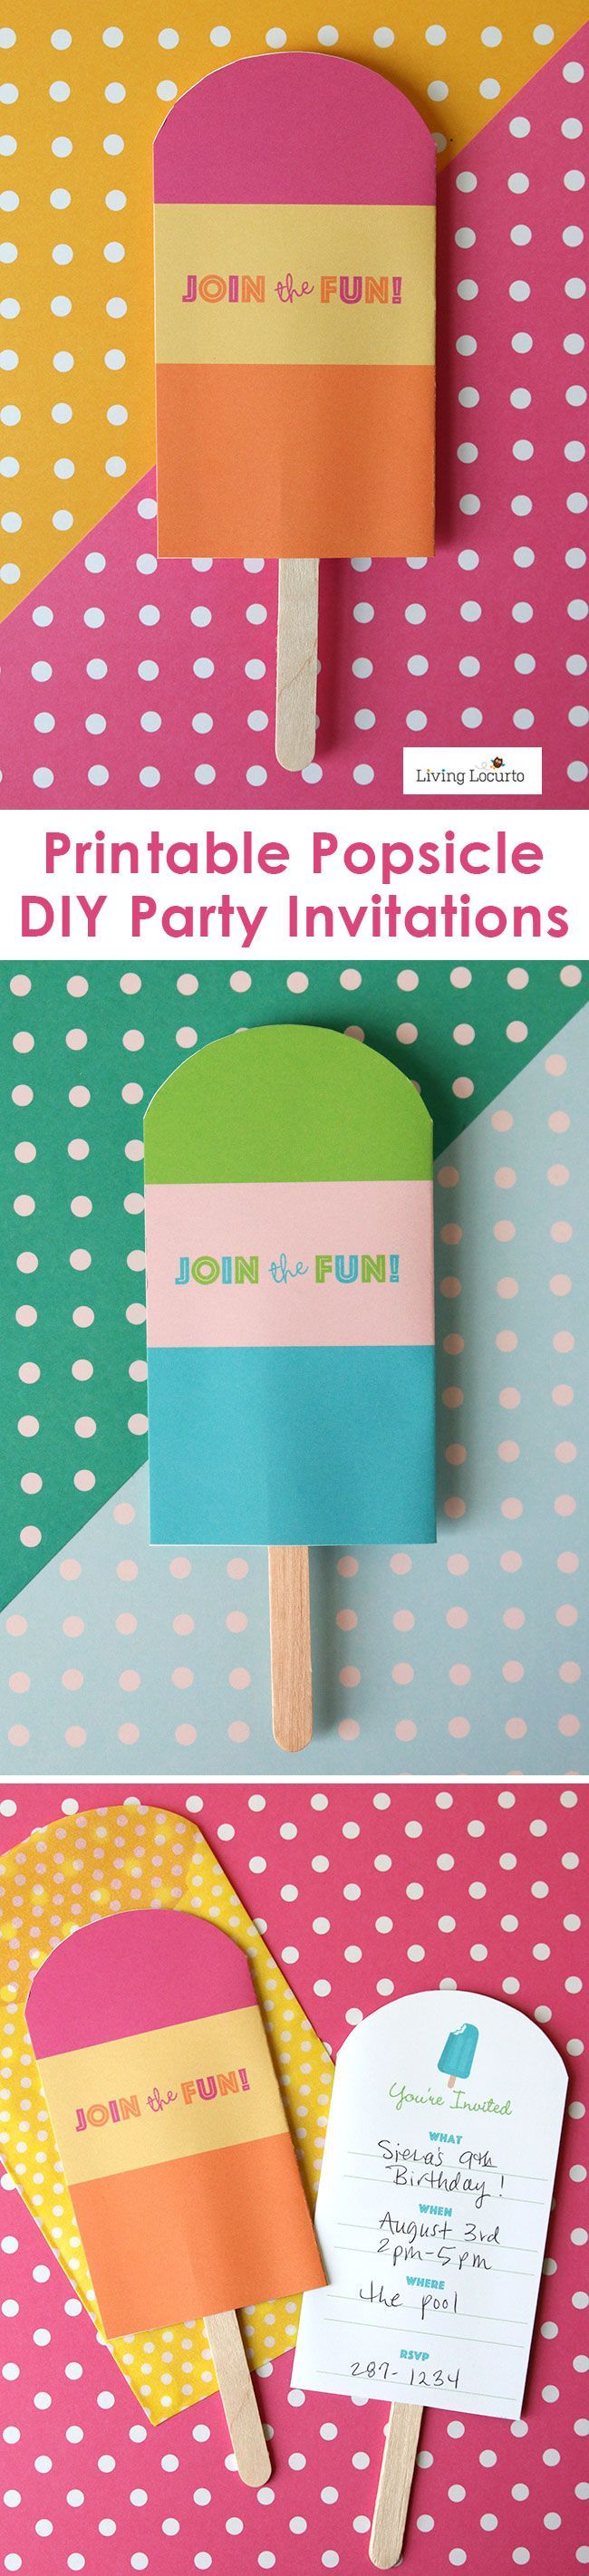 office summer party ideas. Office Summer Party Ideas. Chill Out With These Cute Free Printable Popsicle Invitations And Ideas O